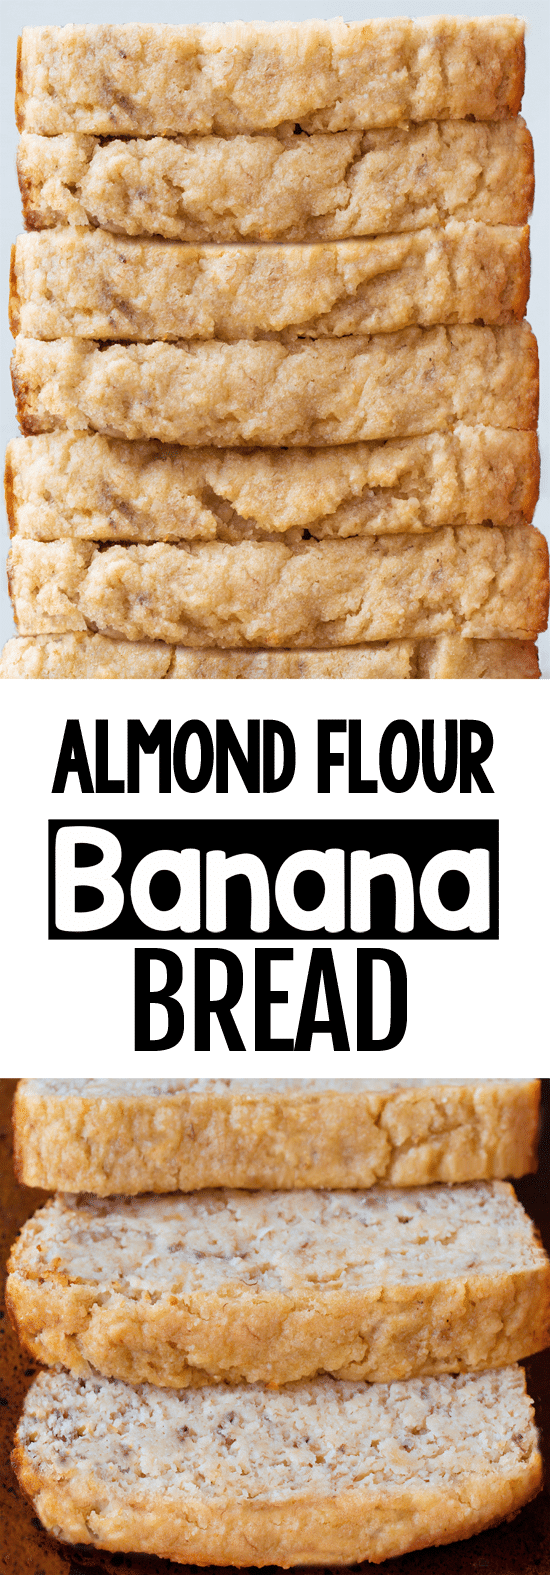 How To Make Low Carb Almond Flour Banana Bread